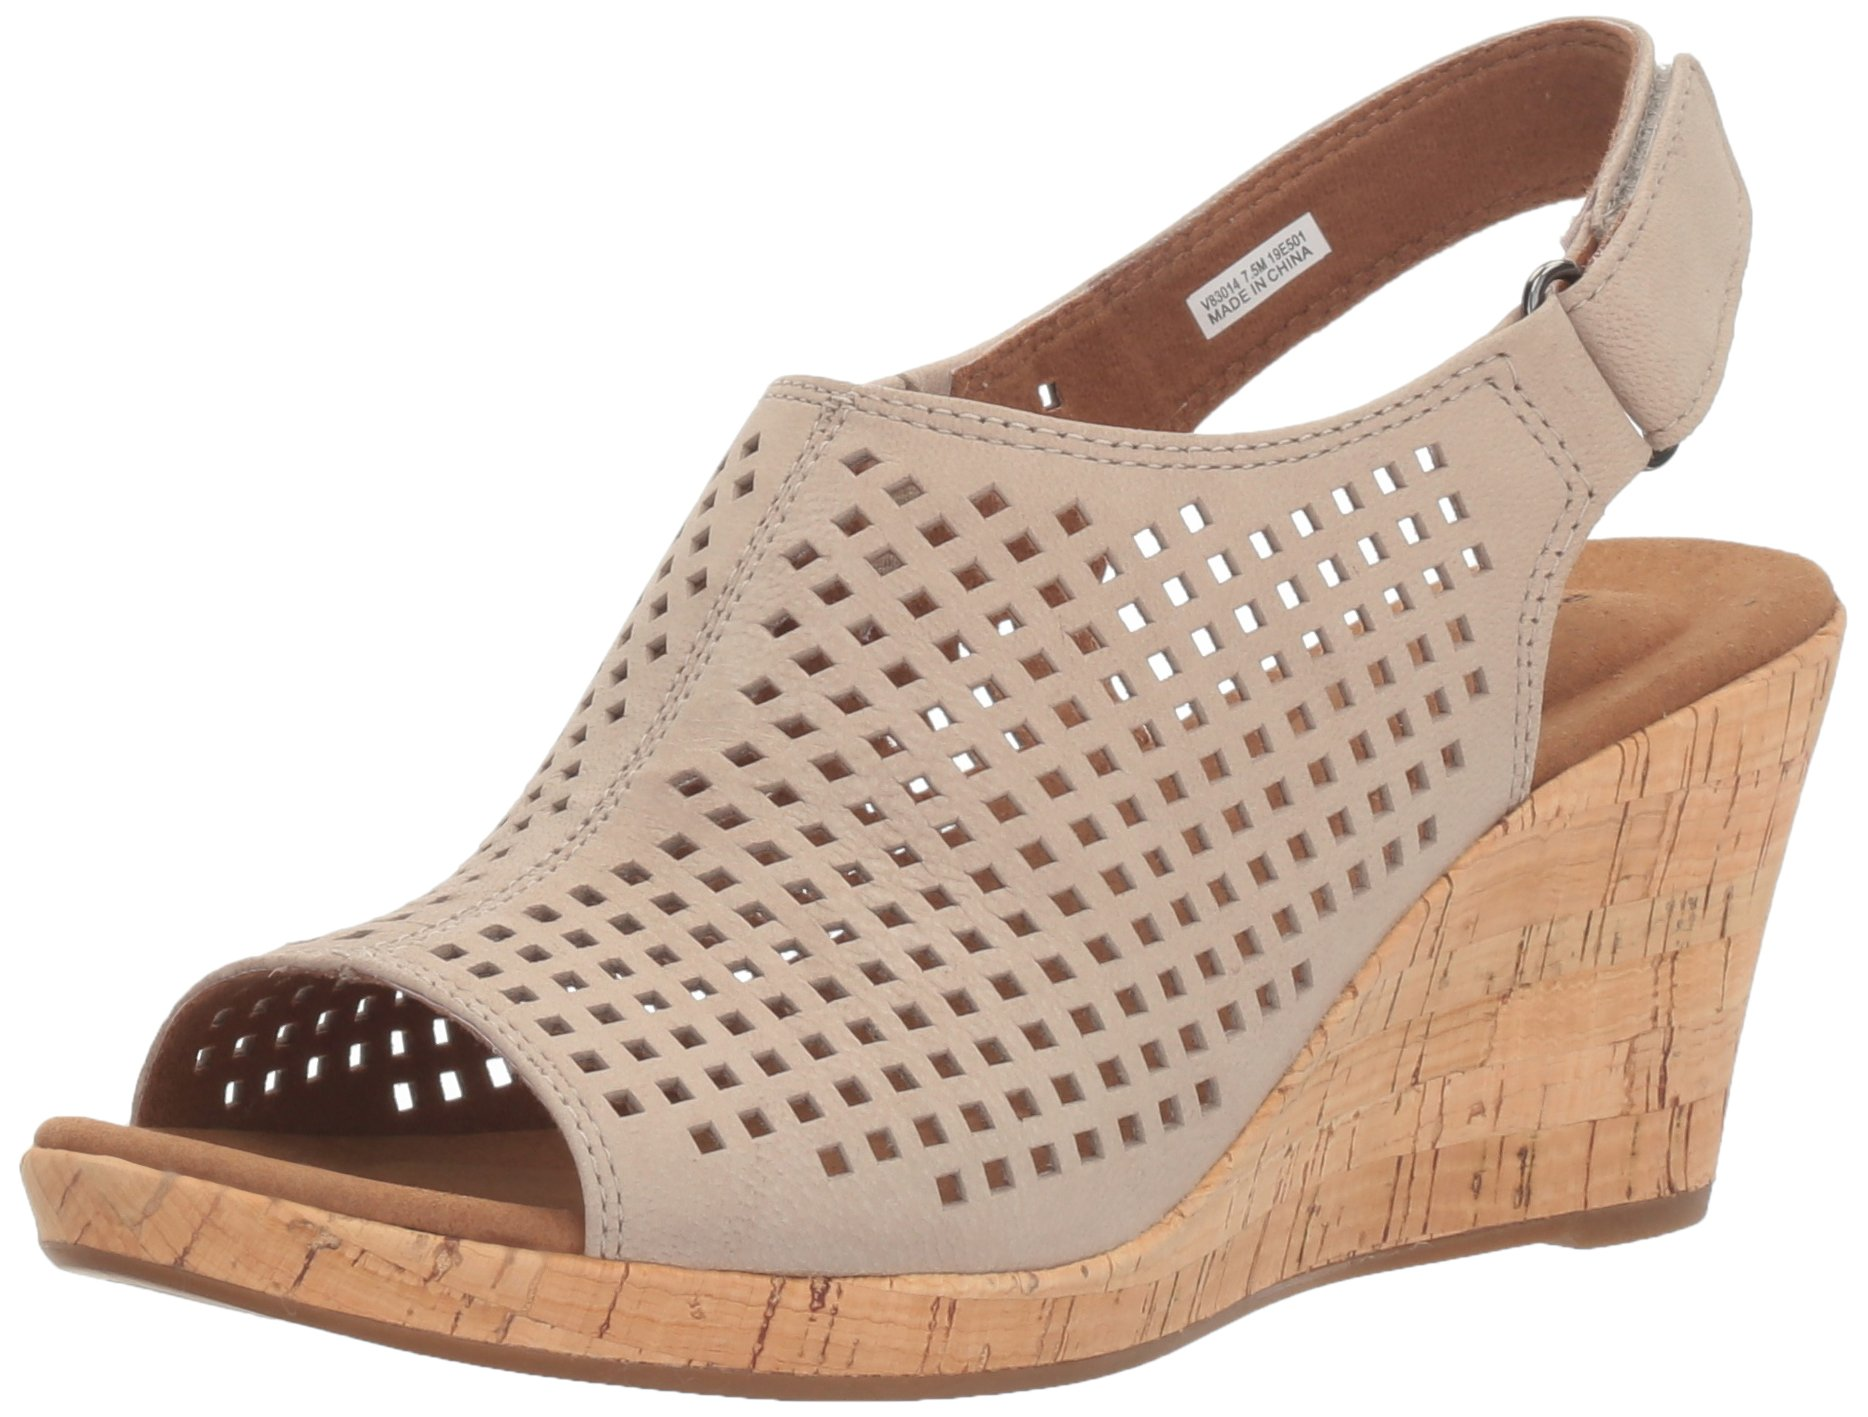 Rockport Women's Briah Perf Sling Wedge Sandal, Taupe Leather, 5.5 W US